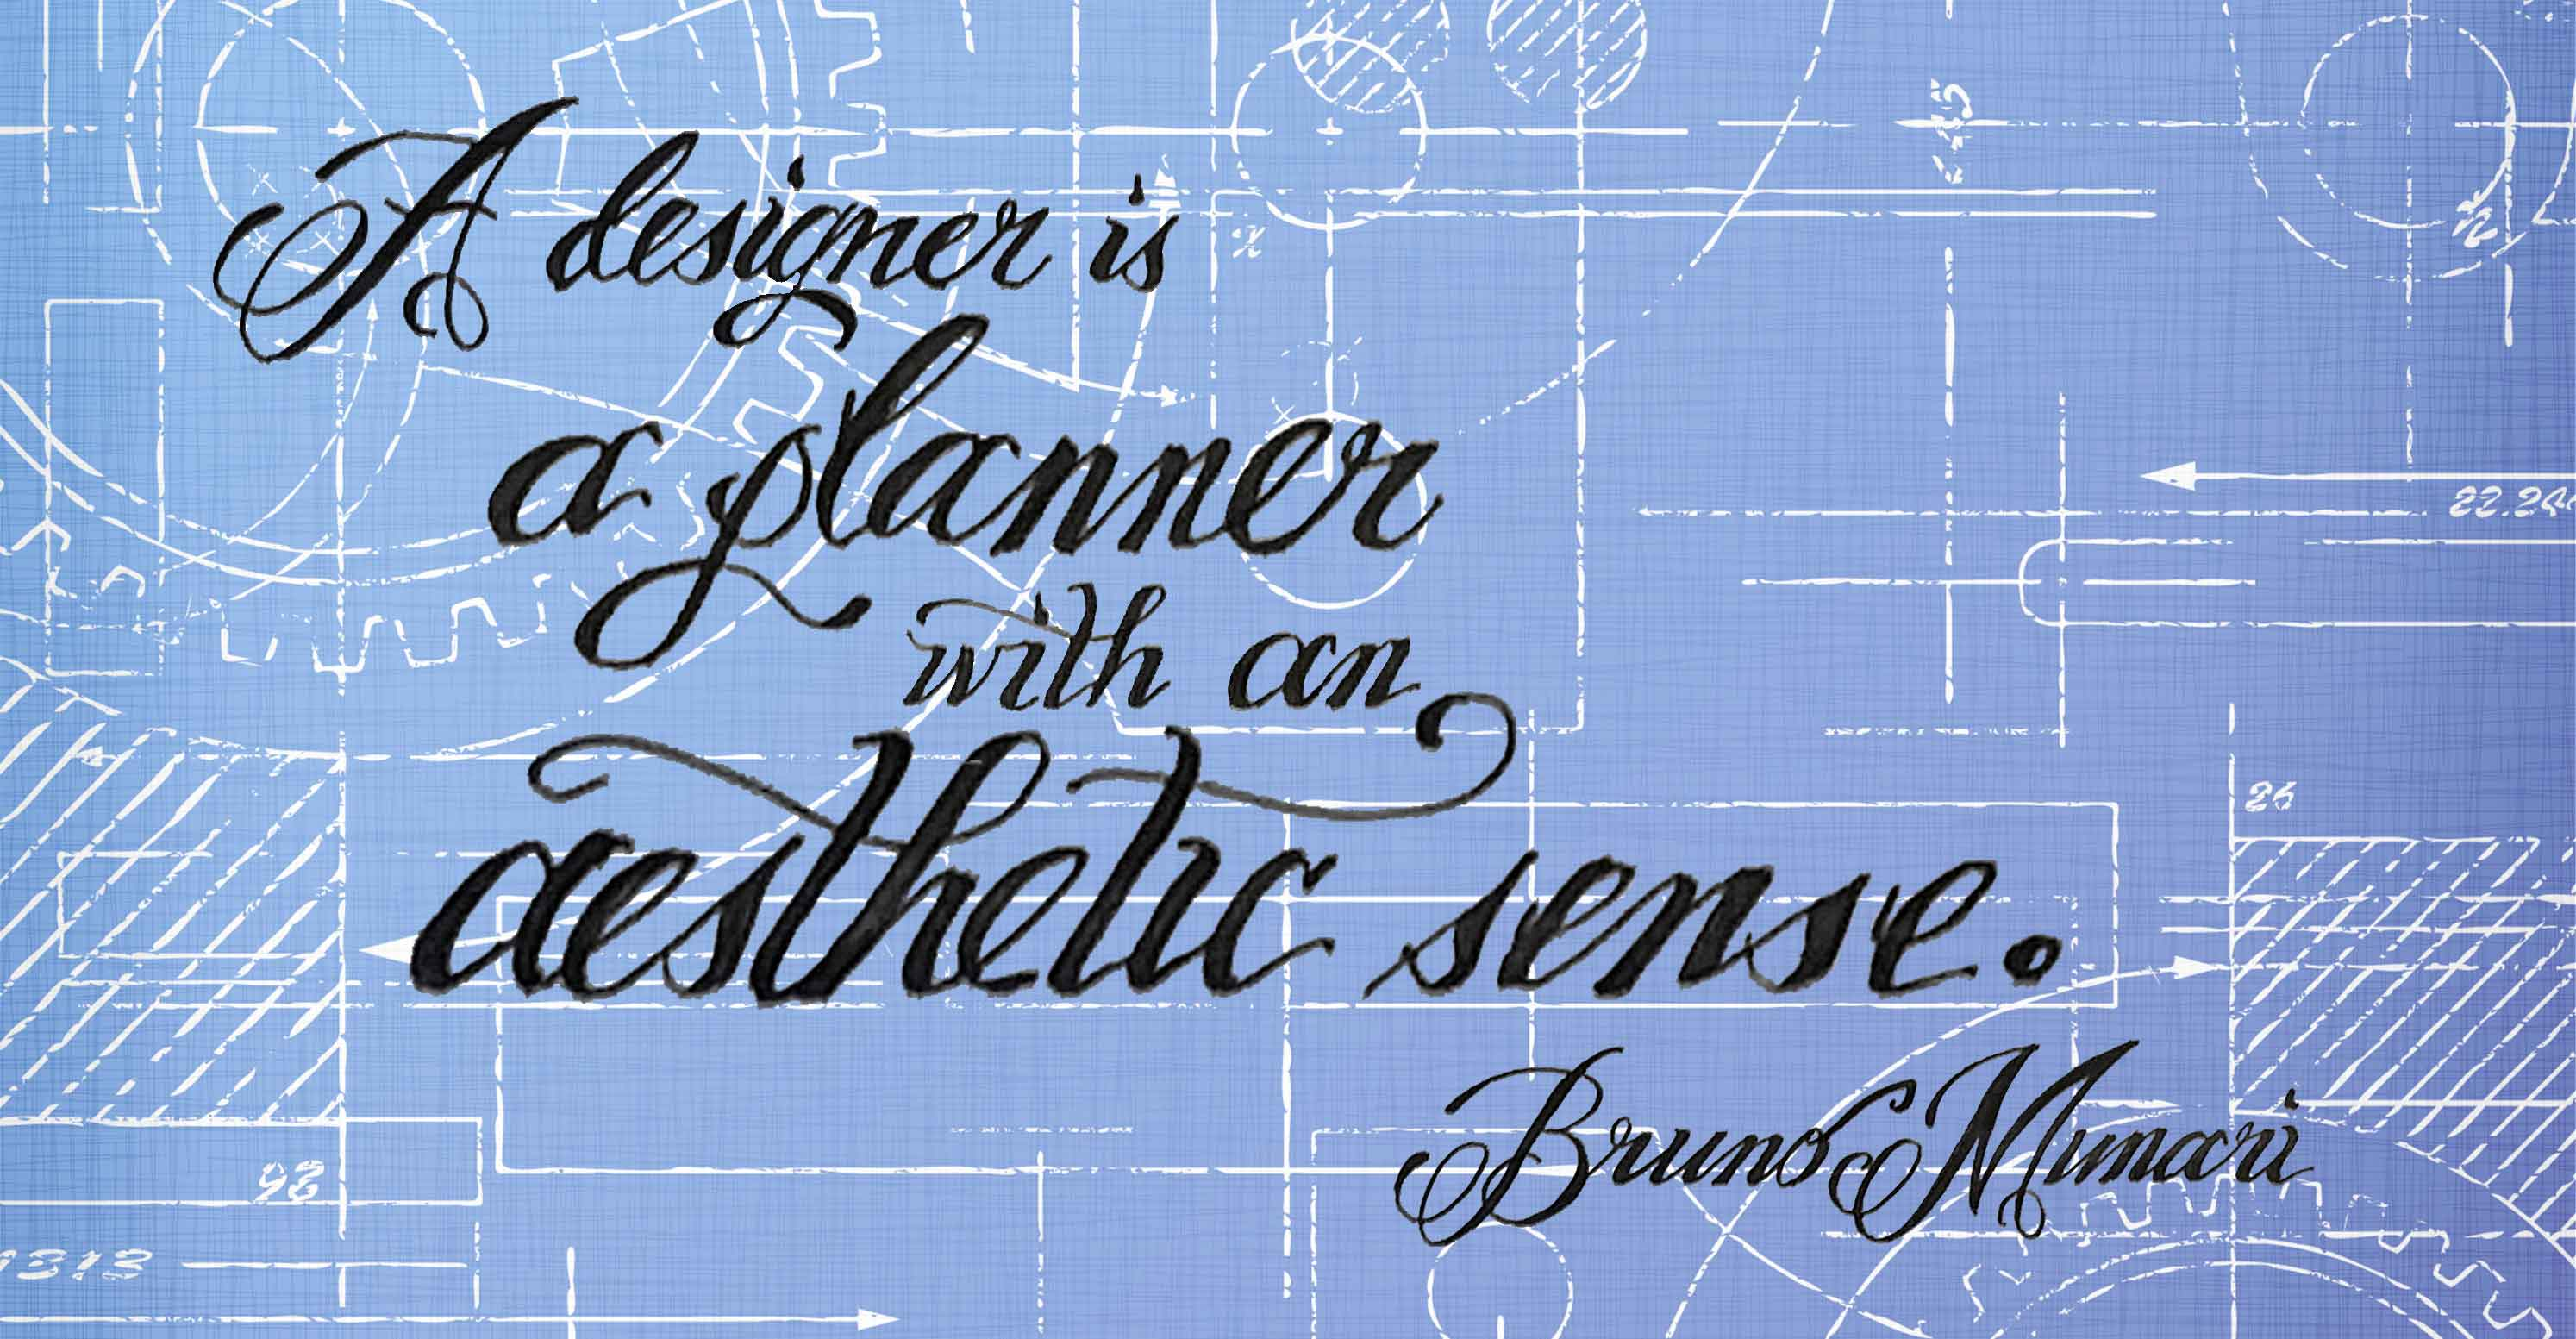 A designer is a planner with an aesthetic sense. - Bruno Munari